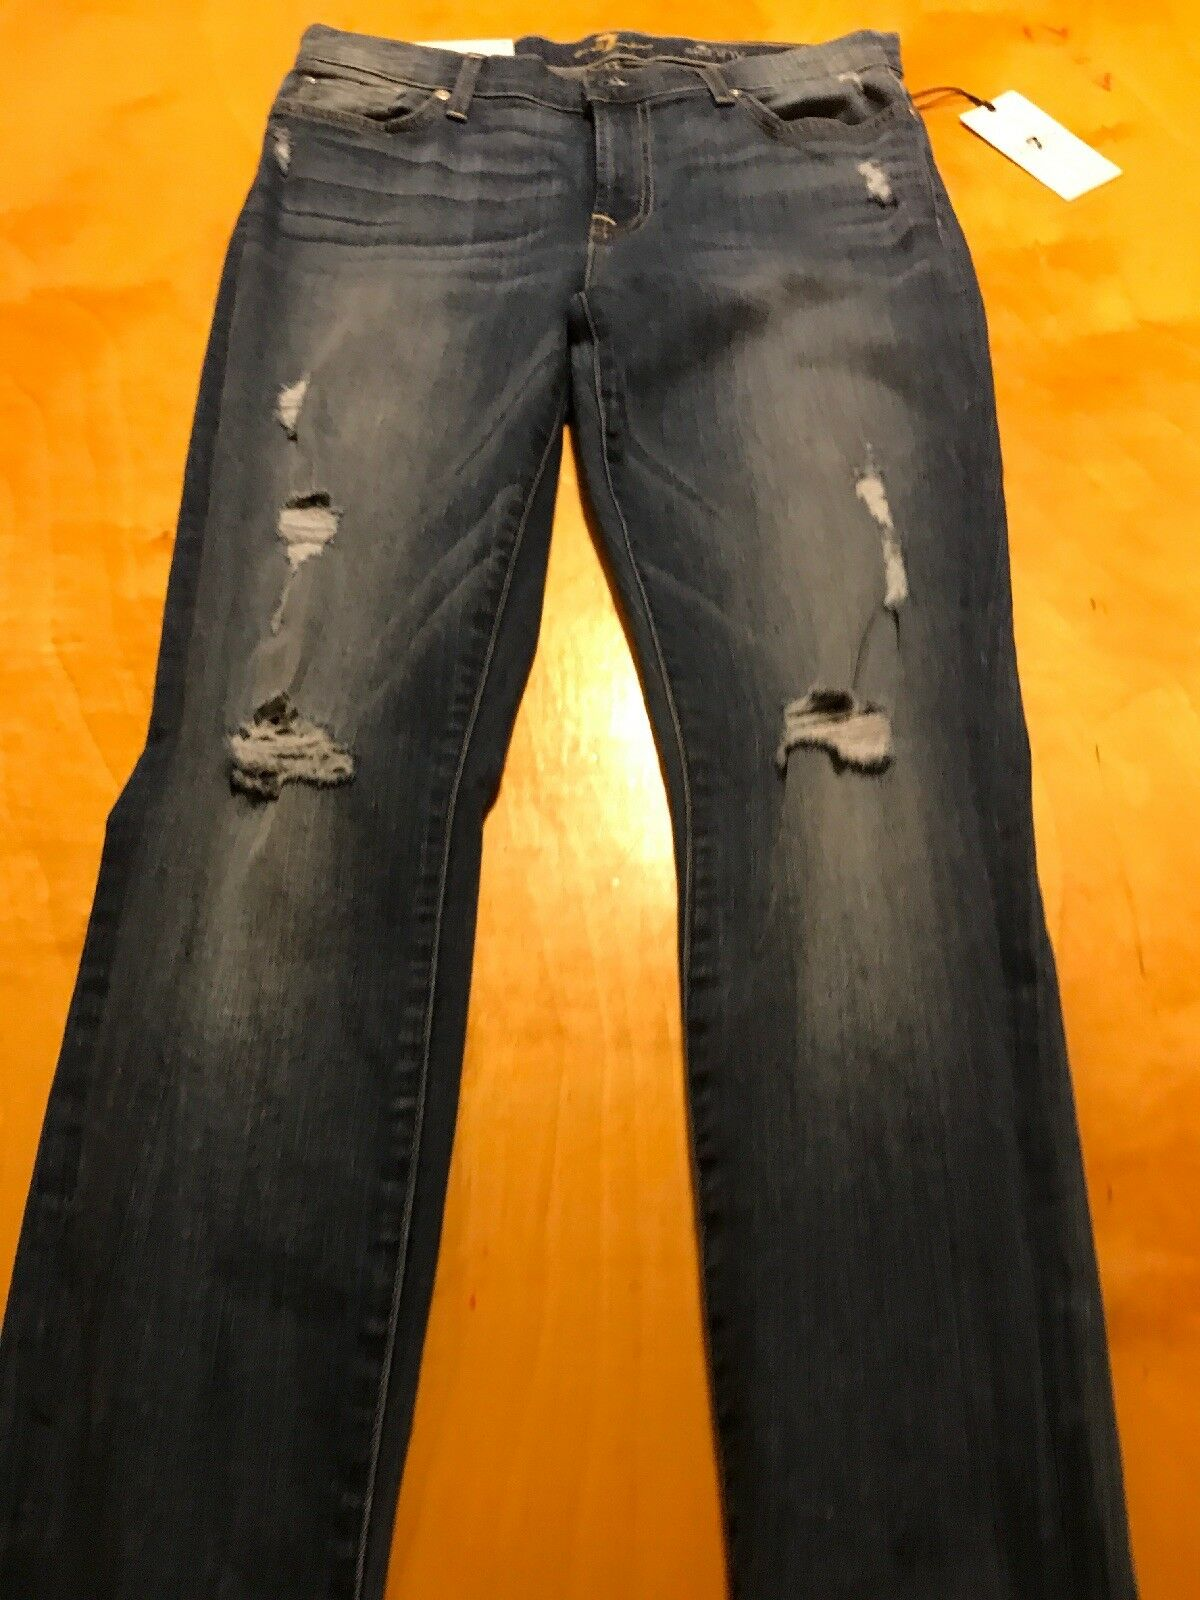 199 Women's 7 For all mankind super skinny the ankle skinny size 30 P53